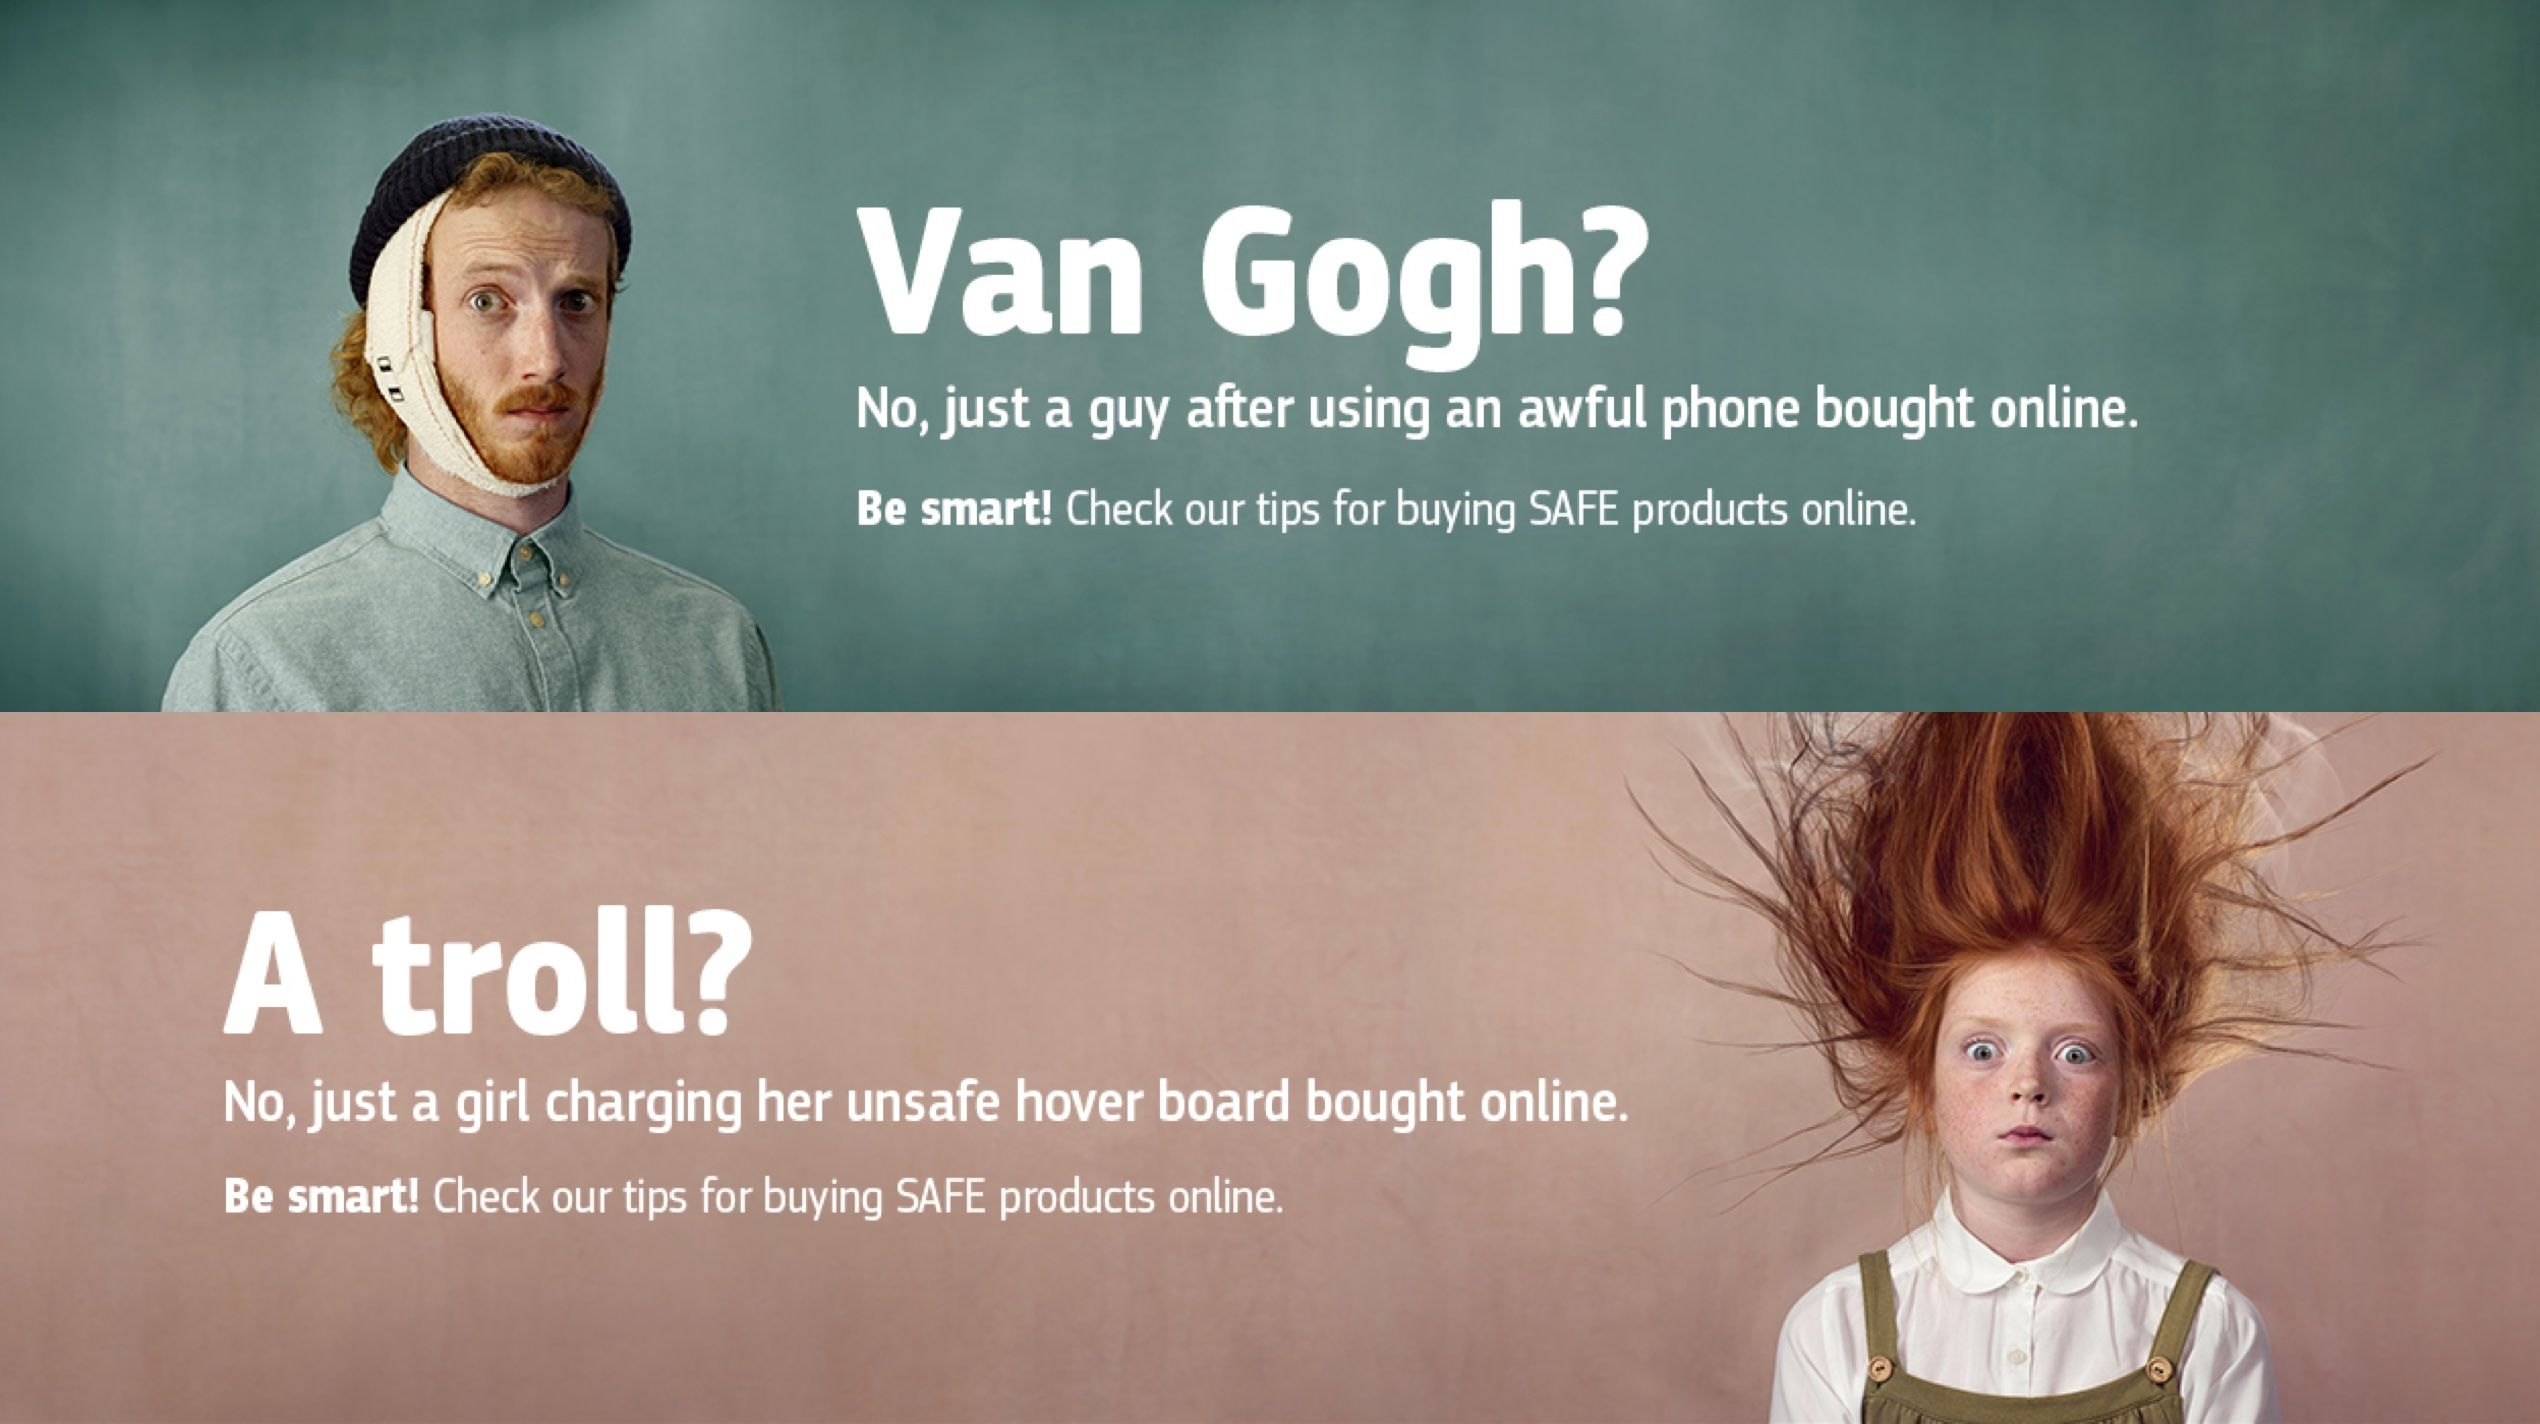 european commission product safety ads van gogh troll